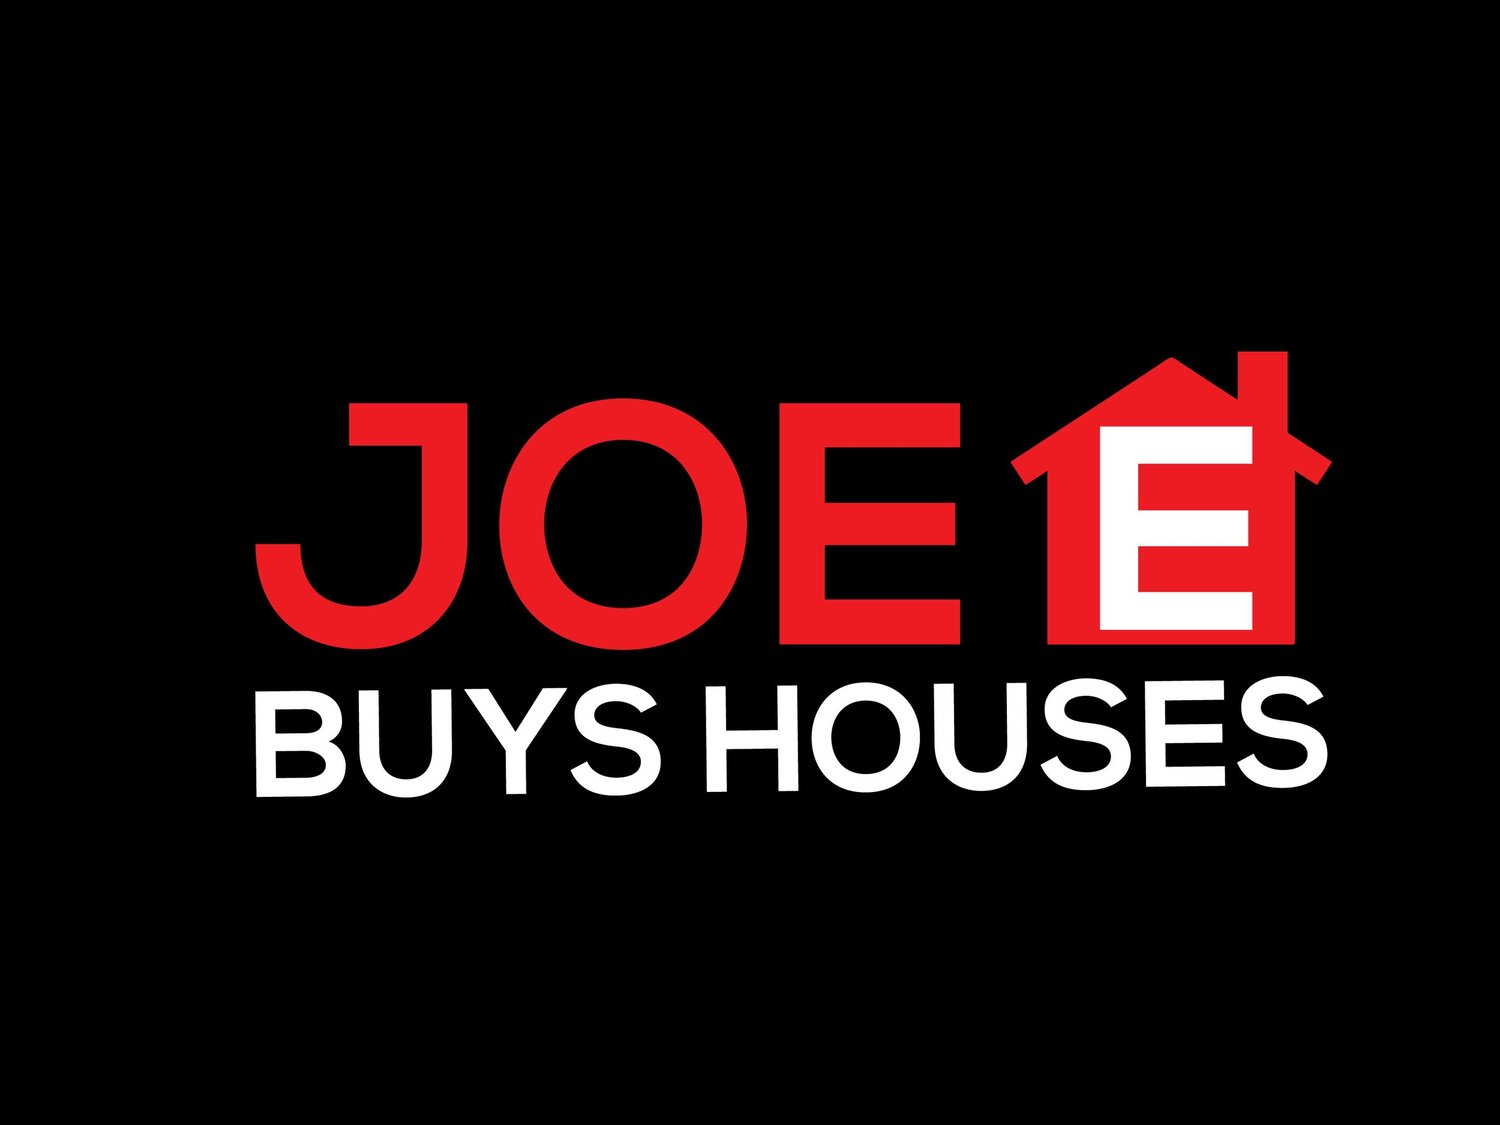 Joe E Buys Houses